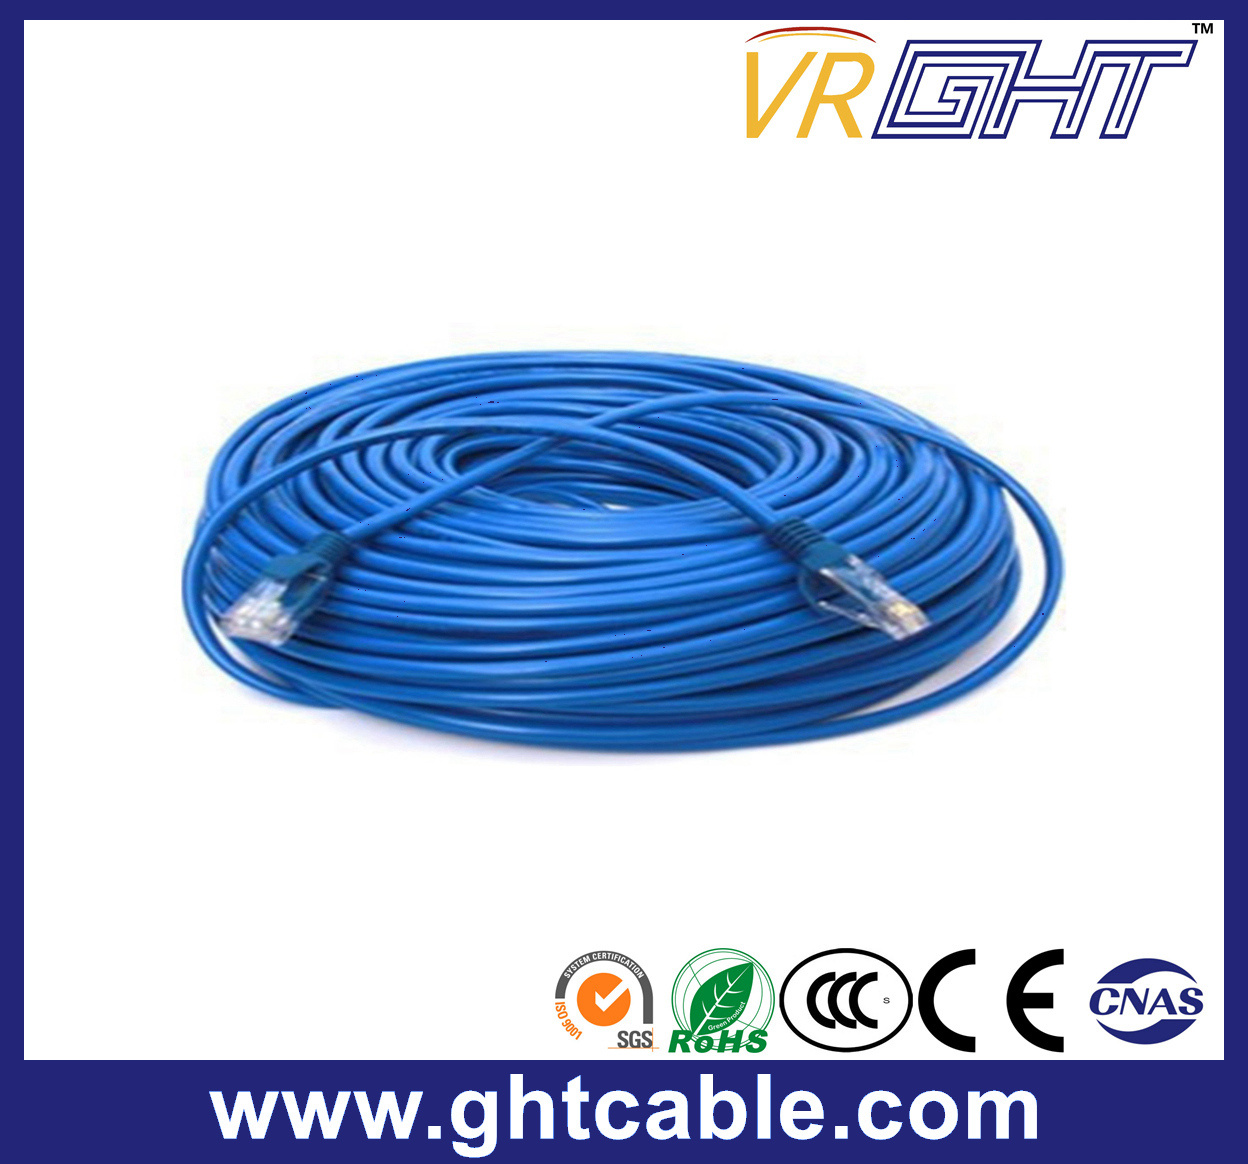 UTP CAT6 Network Cable Patch Cord